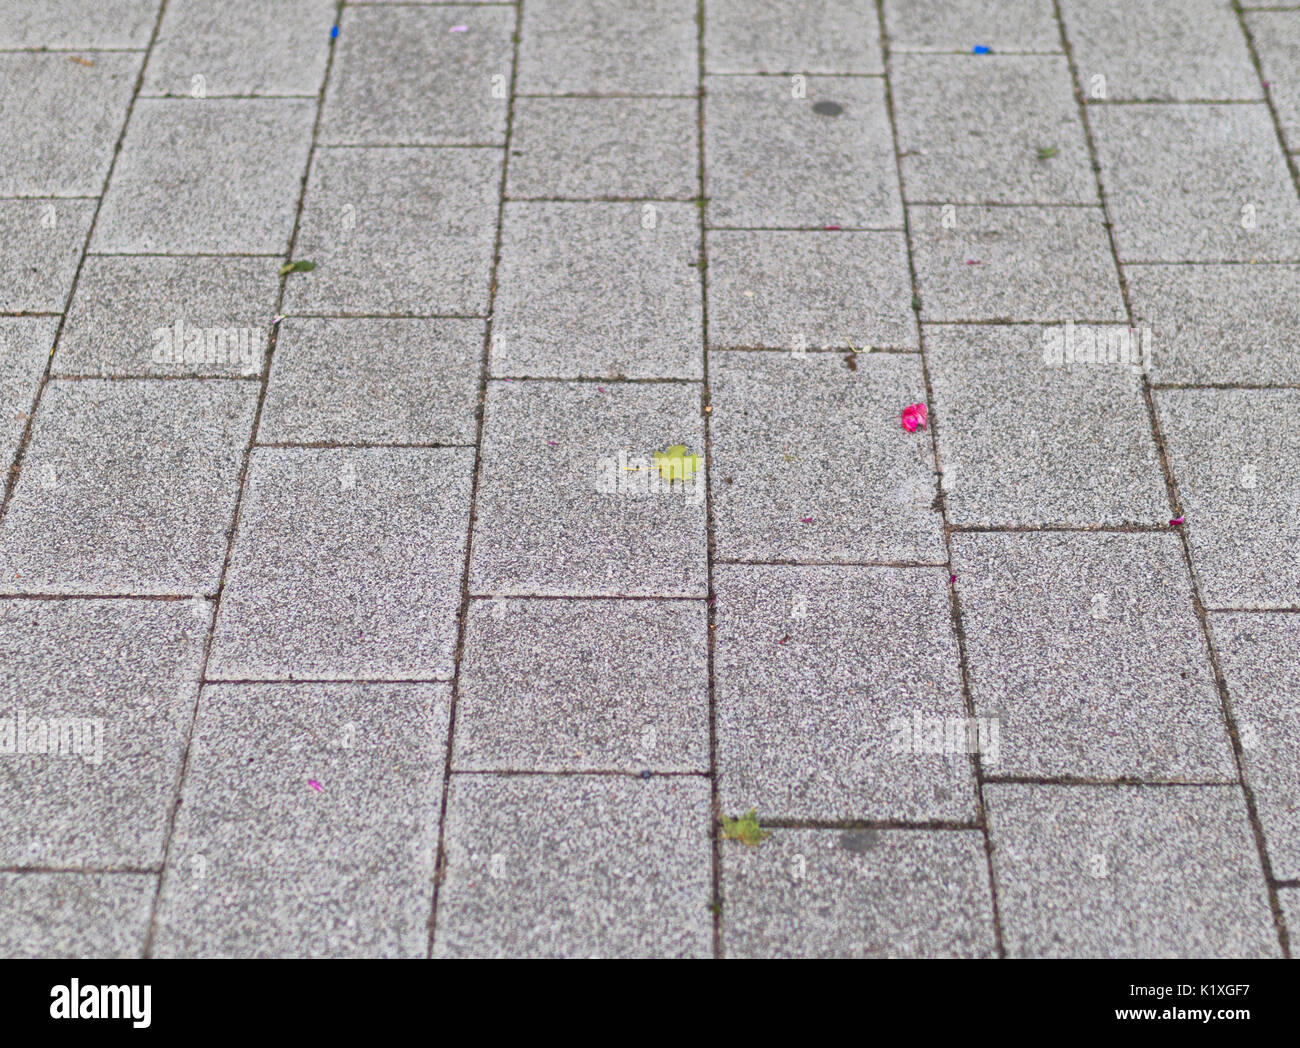 Bland, block paved pavemnt, urban setting background - Stock Image